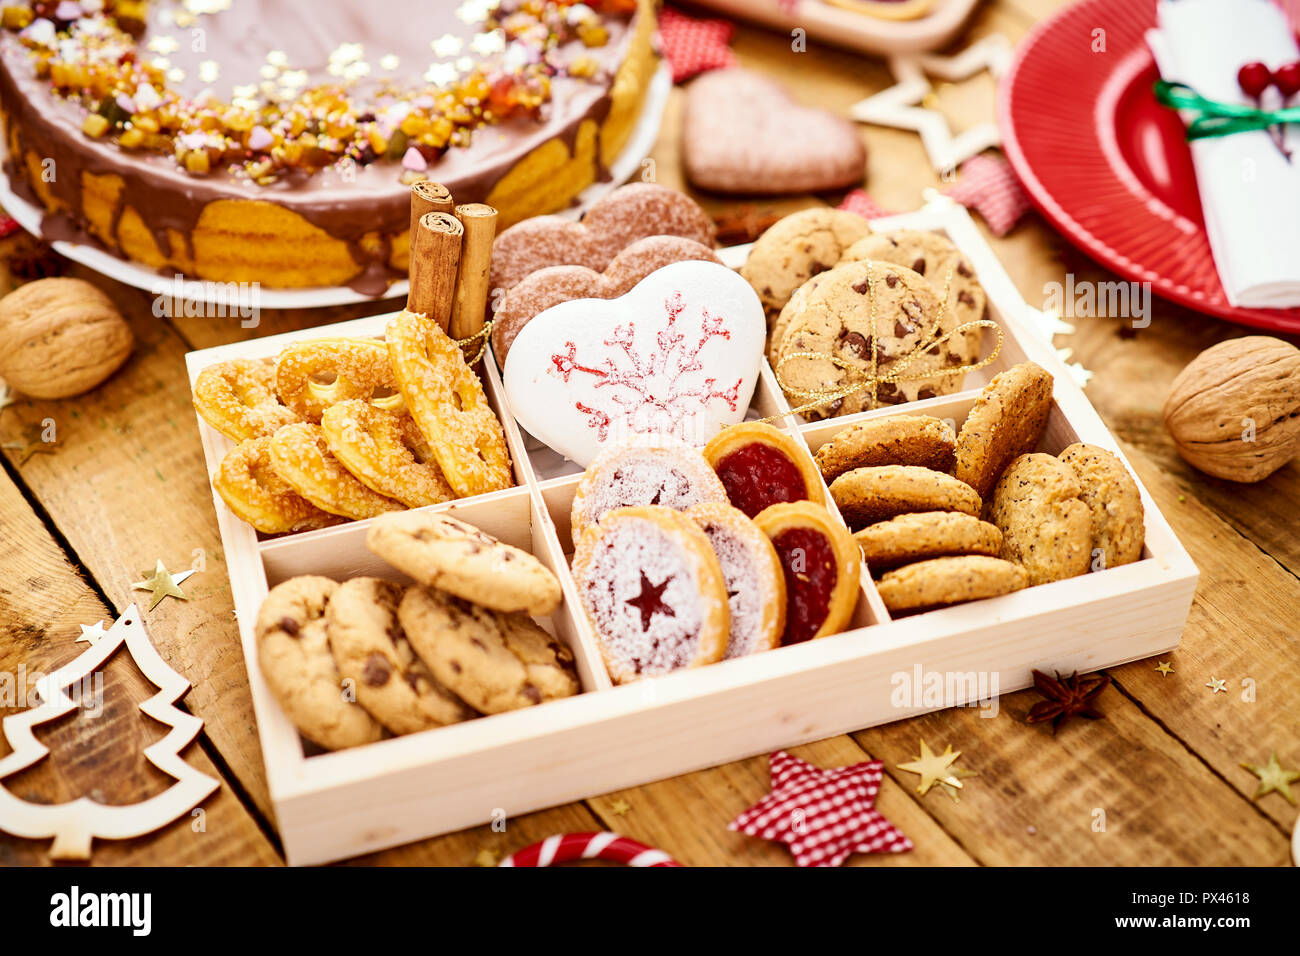 Old Wooden Table With Delicious Christmas Cookies In A Box And